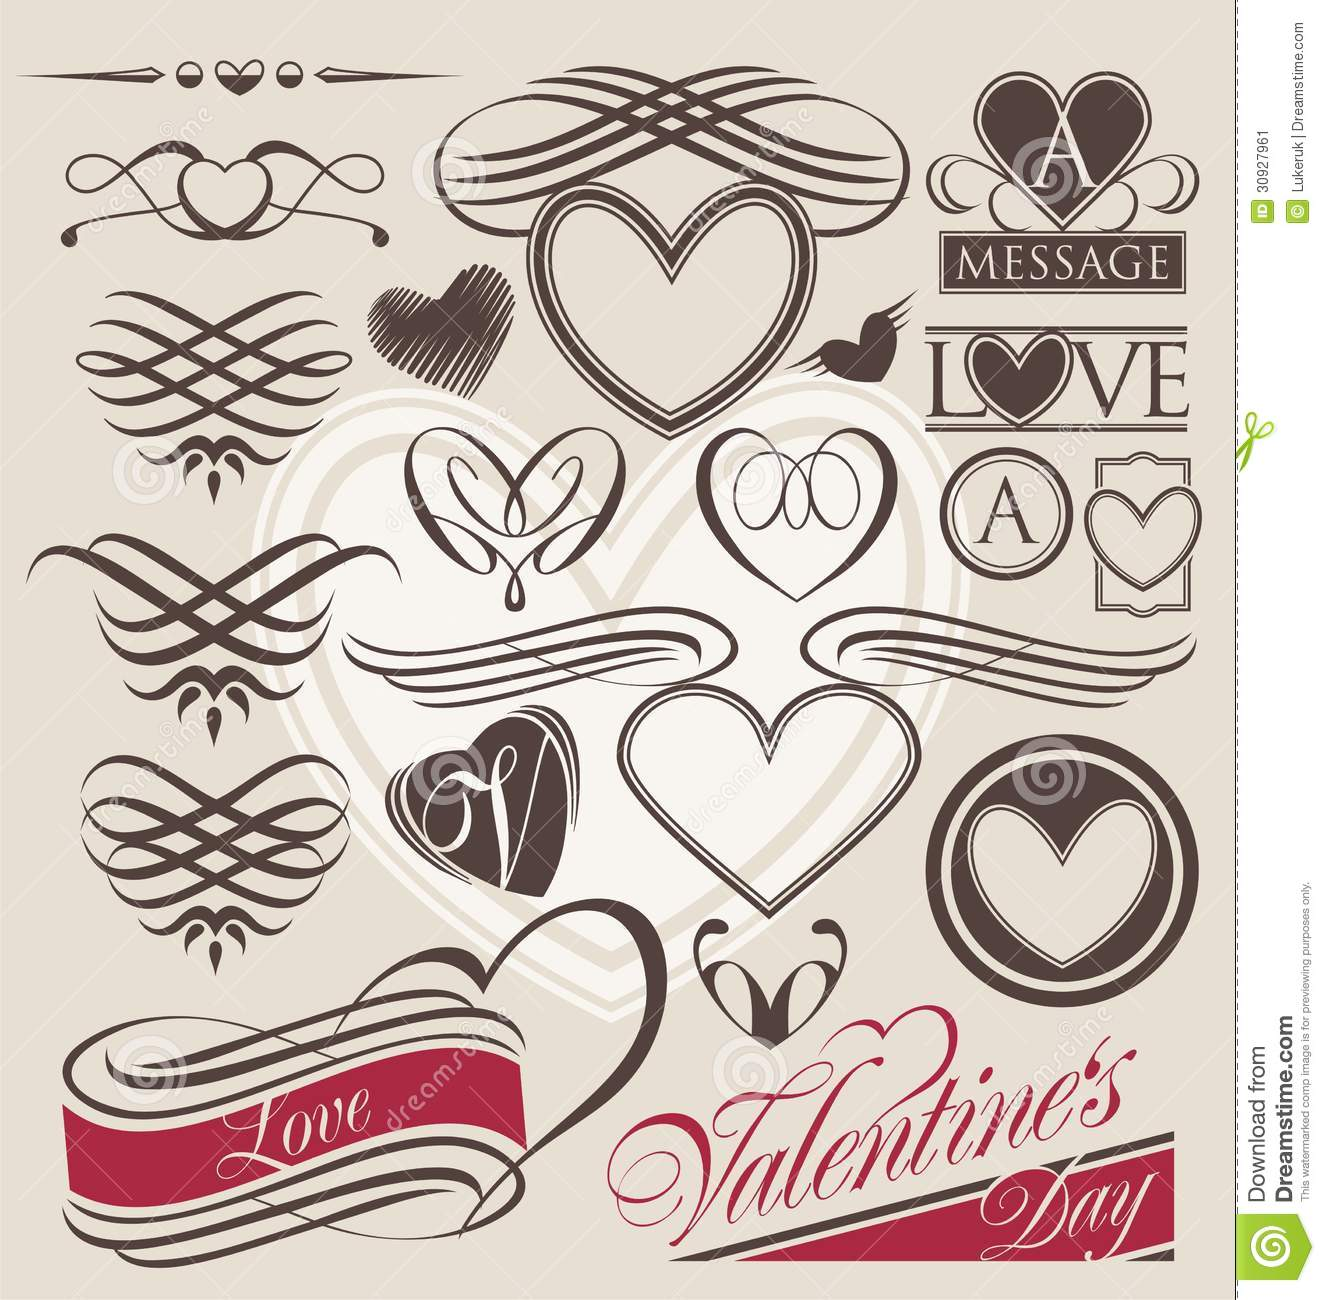 Vintage Set Of Heart Design Elements Stock Vector - Illustration of ...